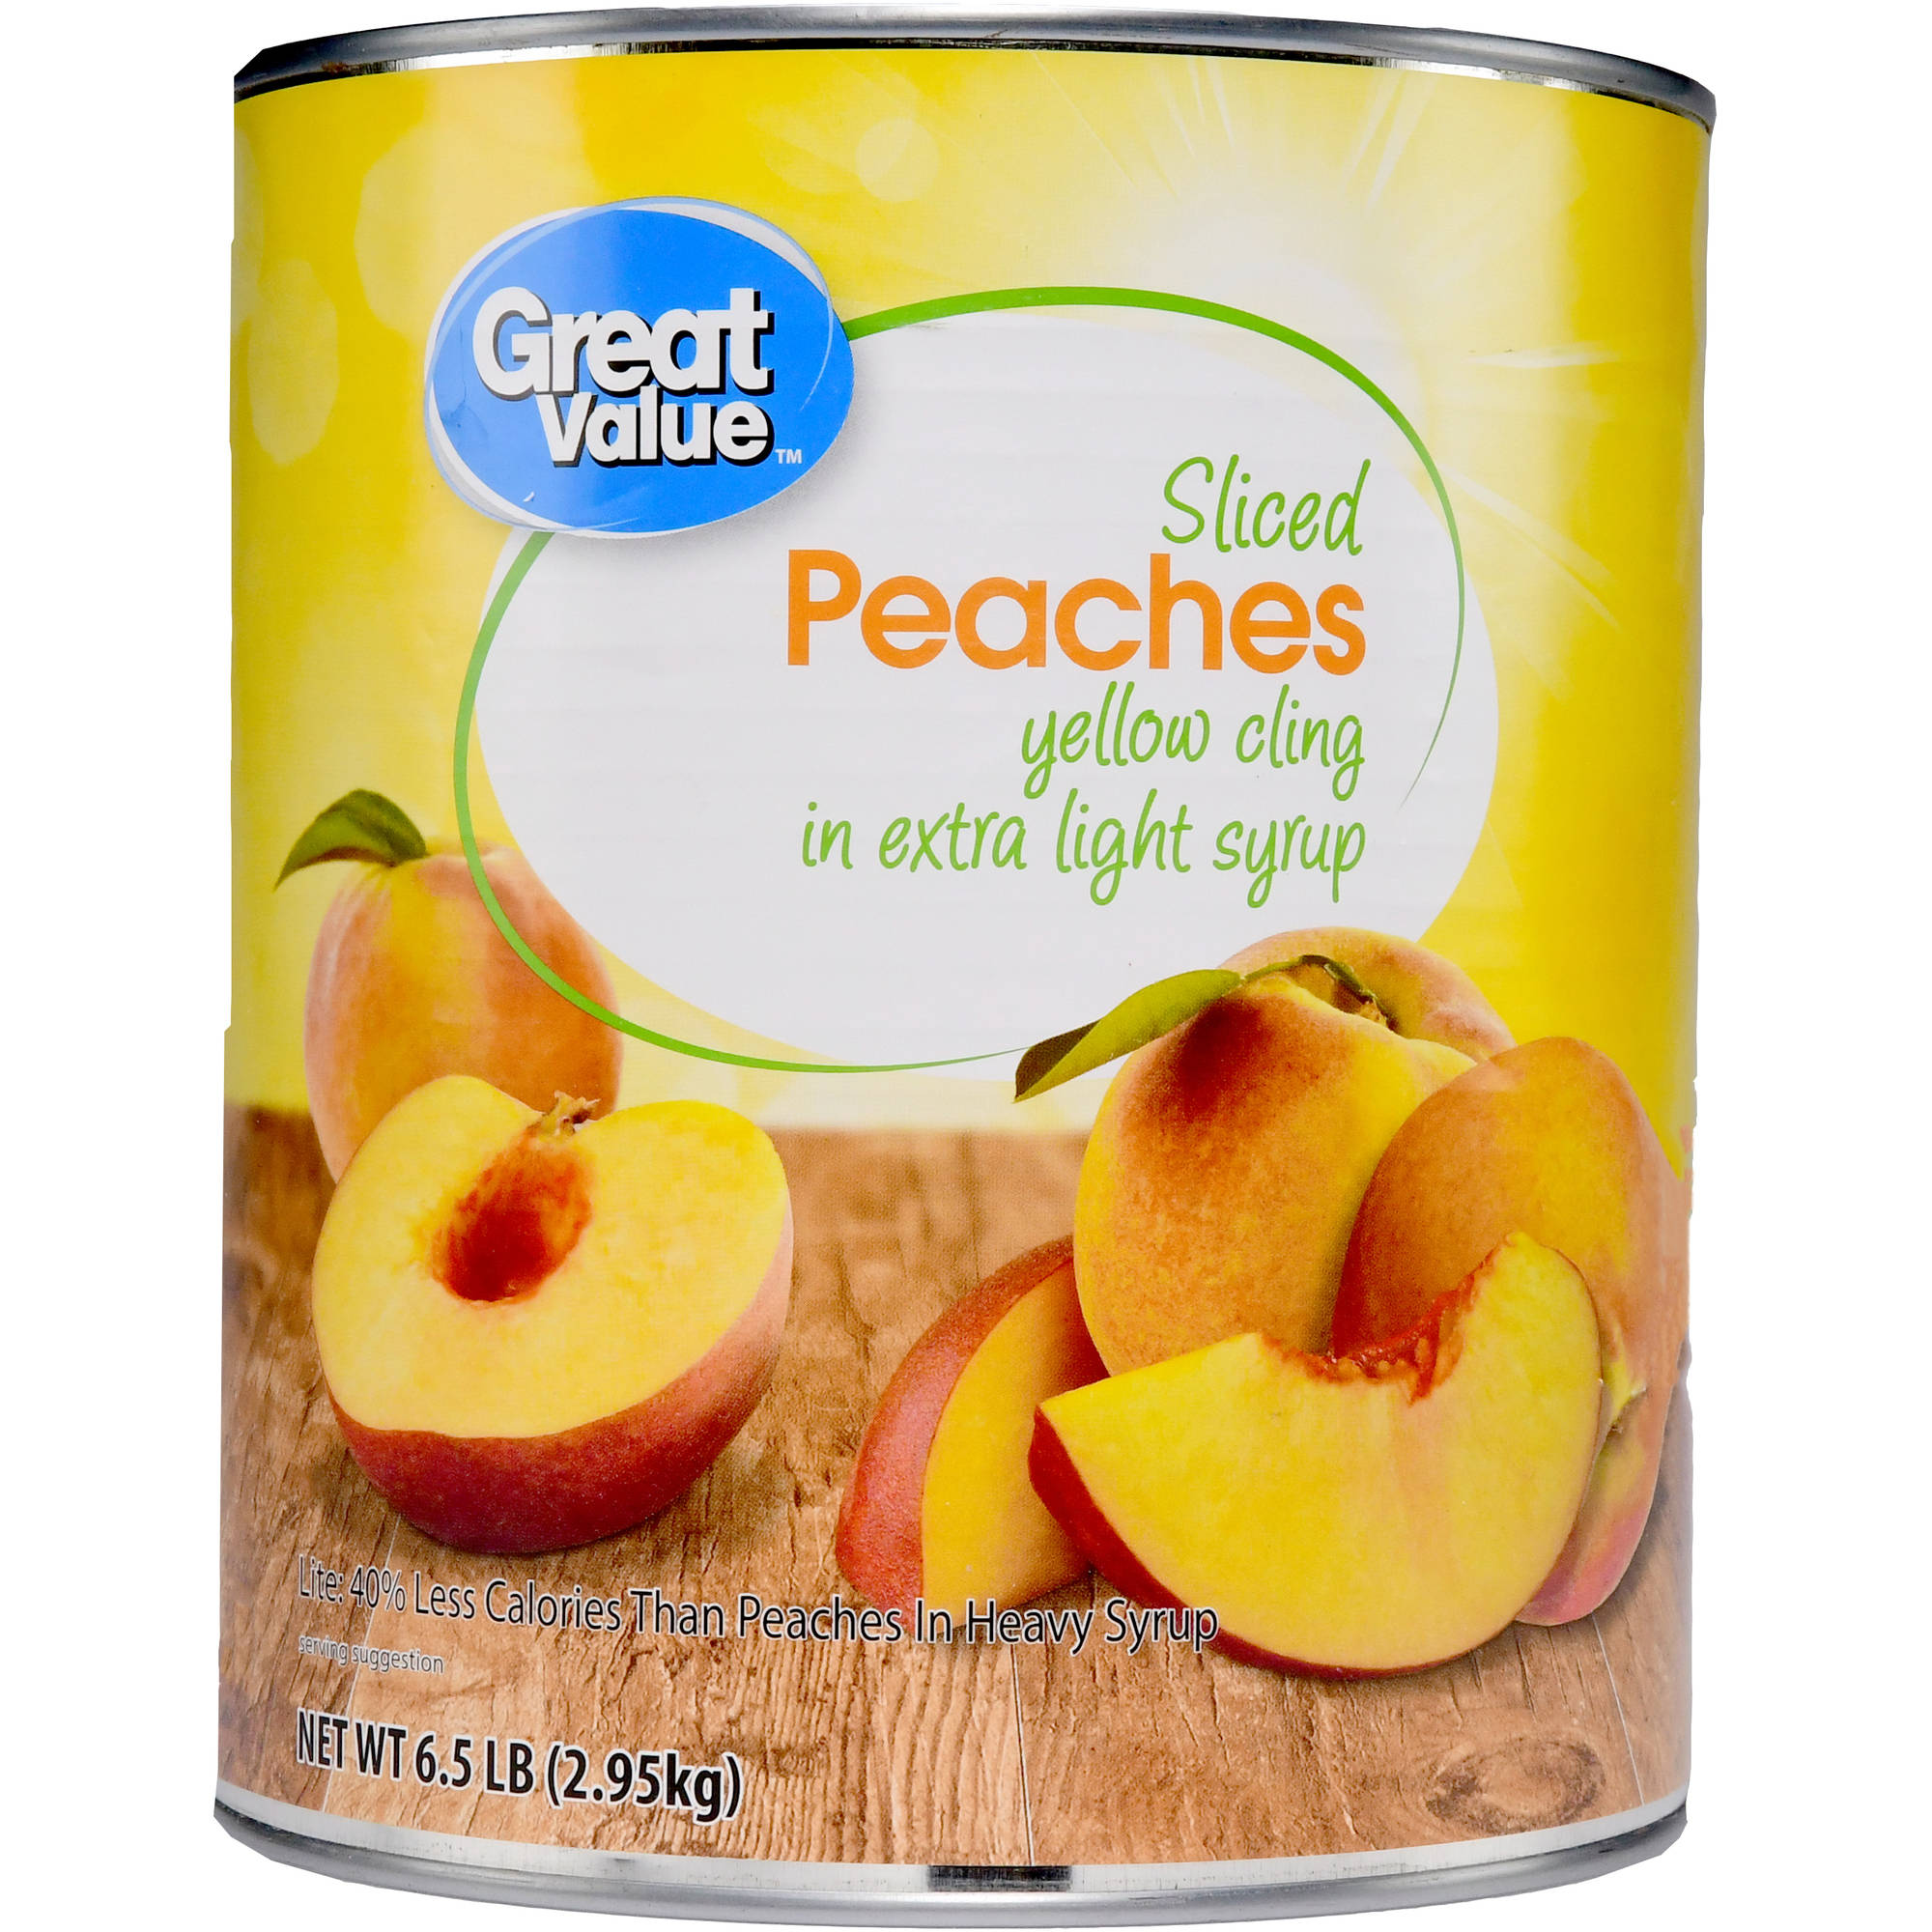 Great Value Sliced Yellow Cling Peaches in Extra Light Syrup, 6.5 lbs